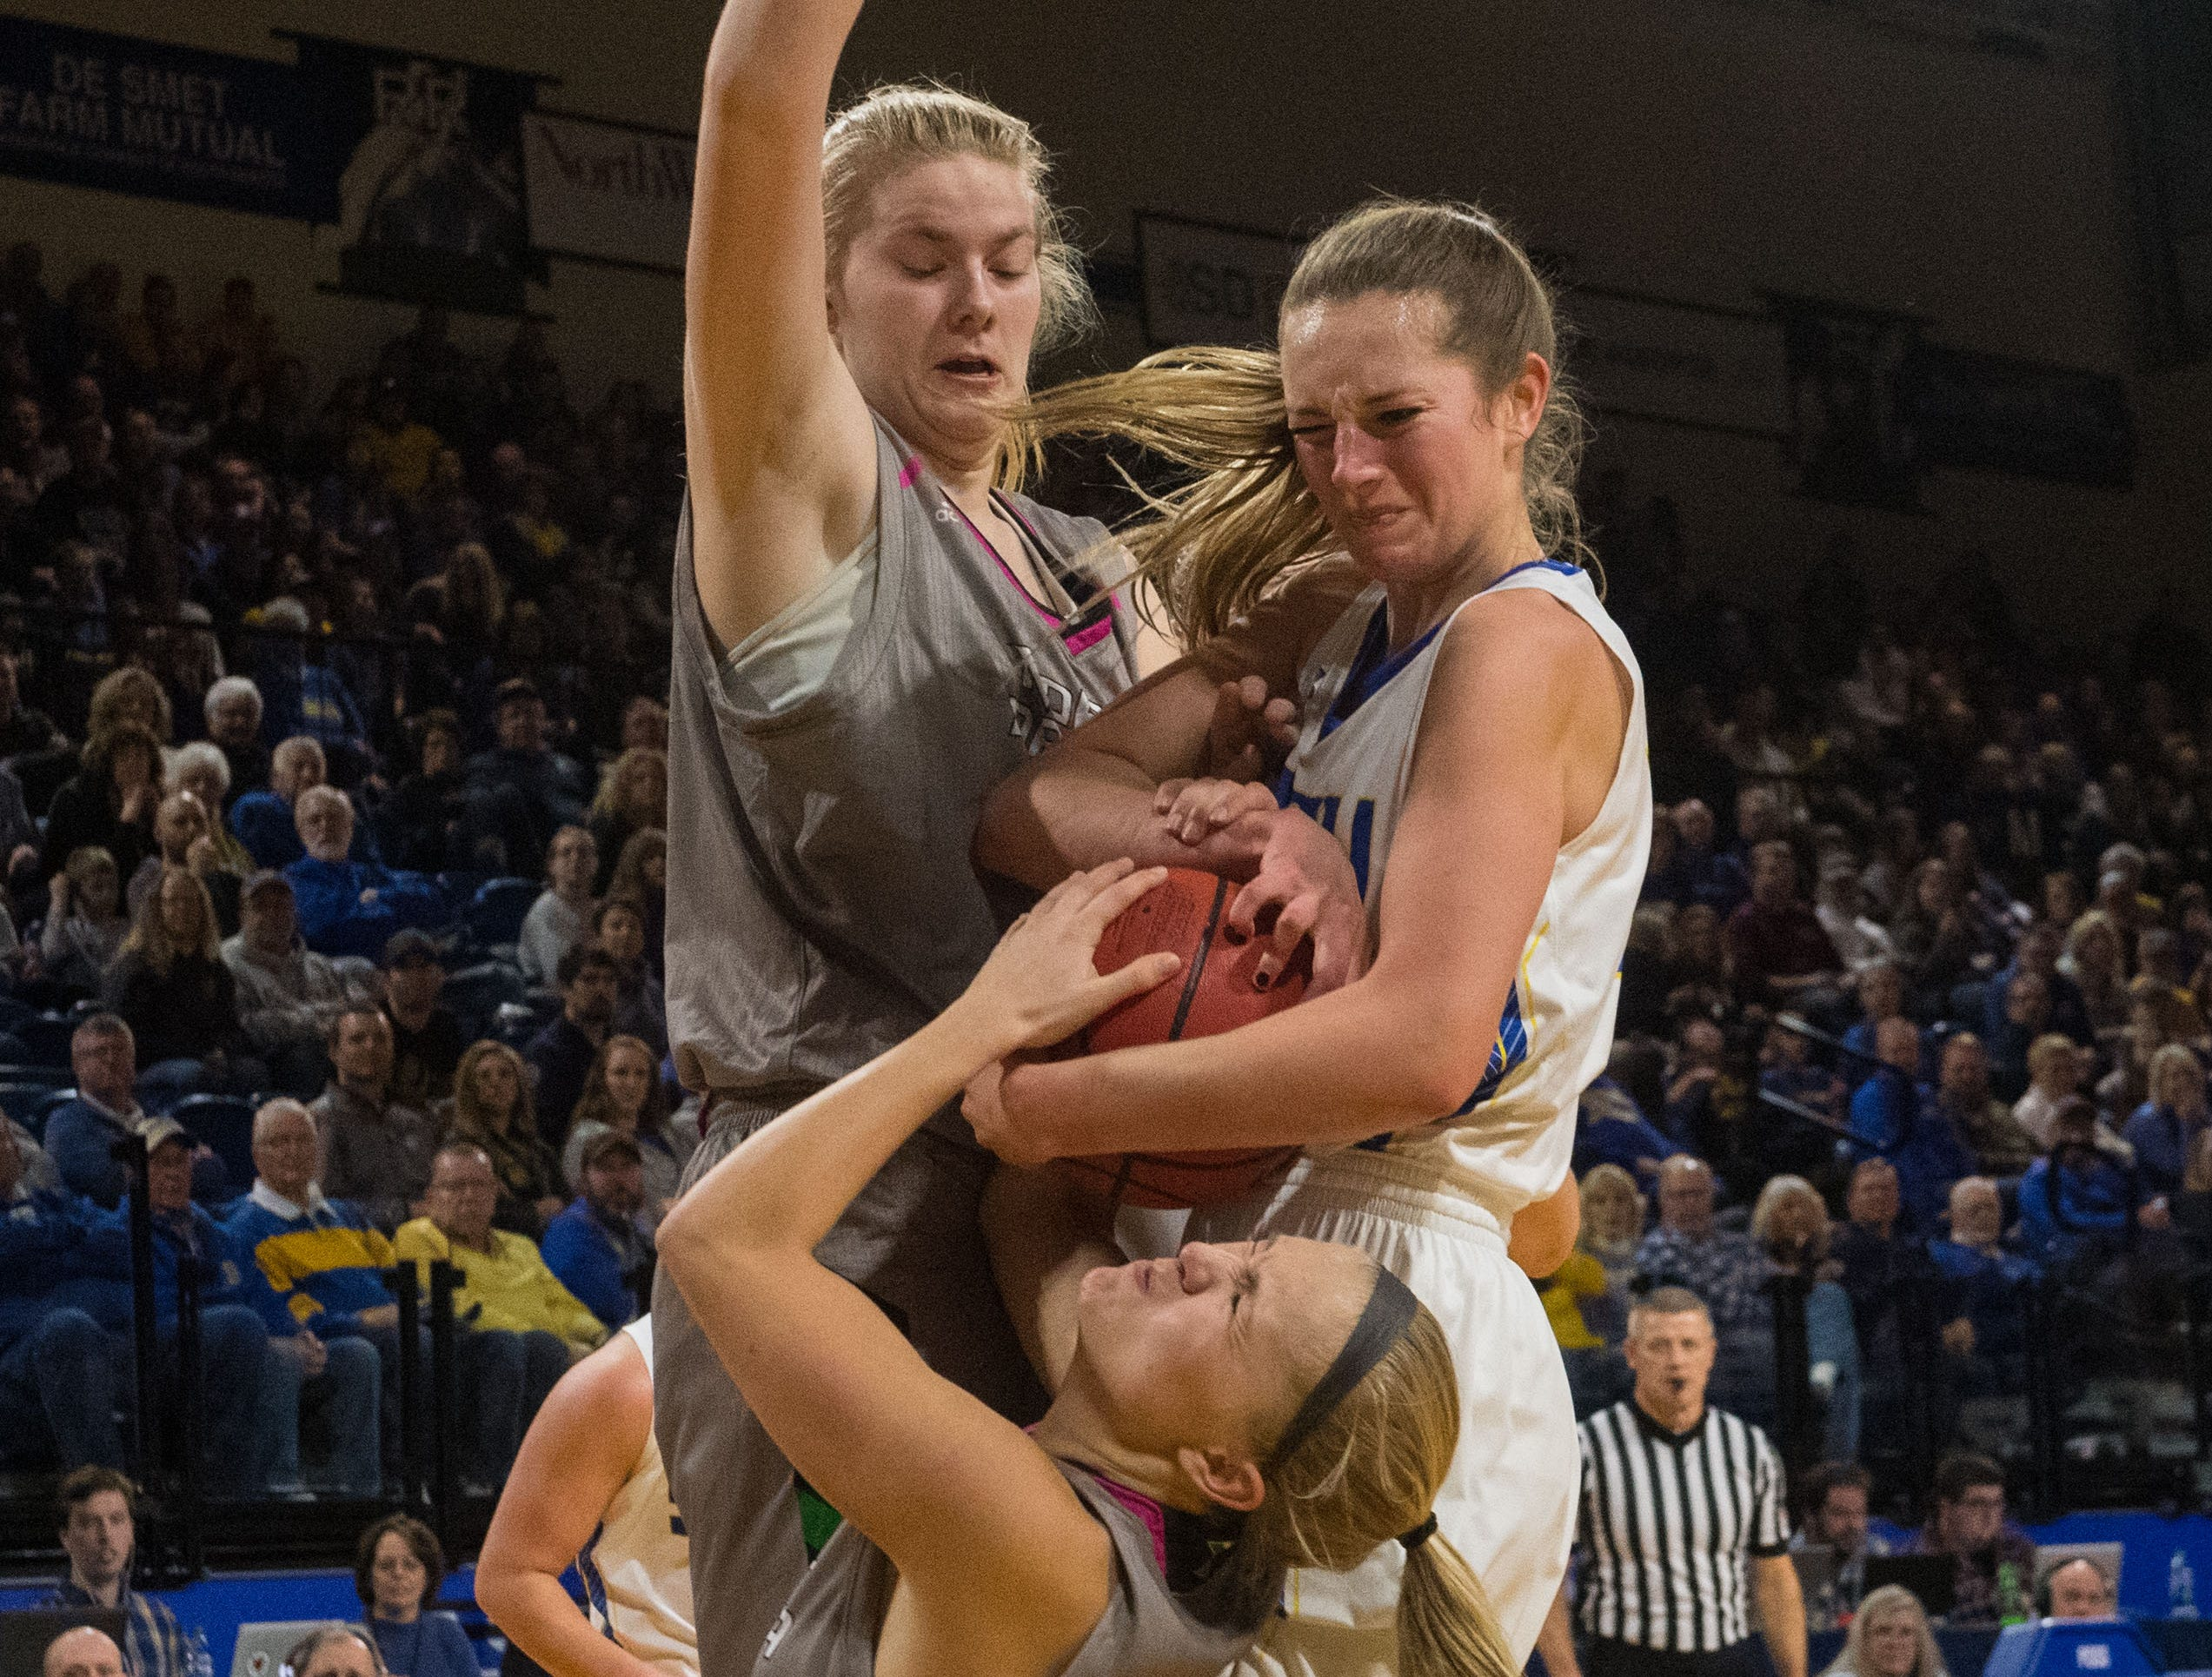 South Dakota State's Tagyn Larson (24) and North Dakota players grab for the ball during a game in Brookings, S.D., Saturday, Feb. 9, 2019.